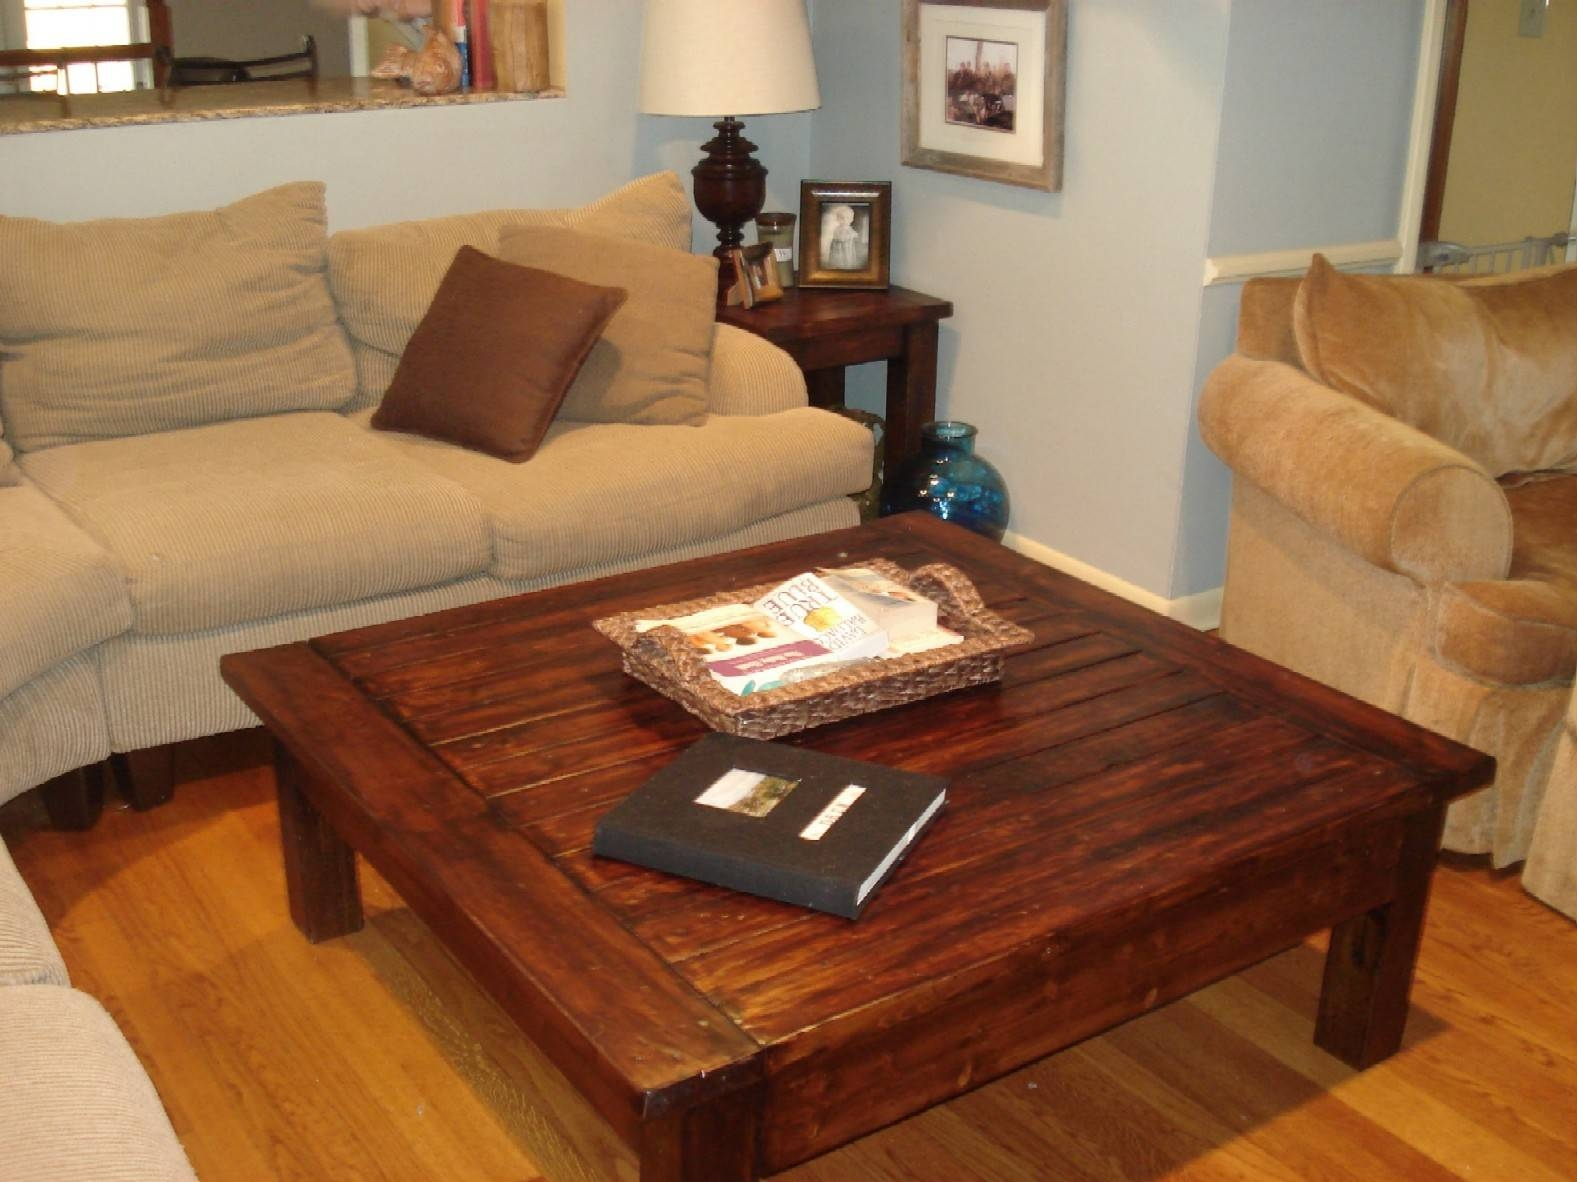 Incredible Large Coffee Table Dimensions – Larkspur Large Coffee with Large Low Square Coffee Tables (Image 14 of 30)